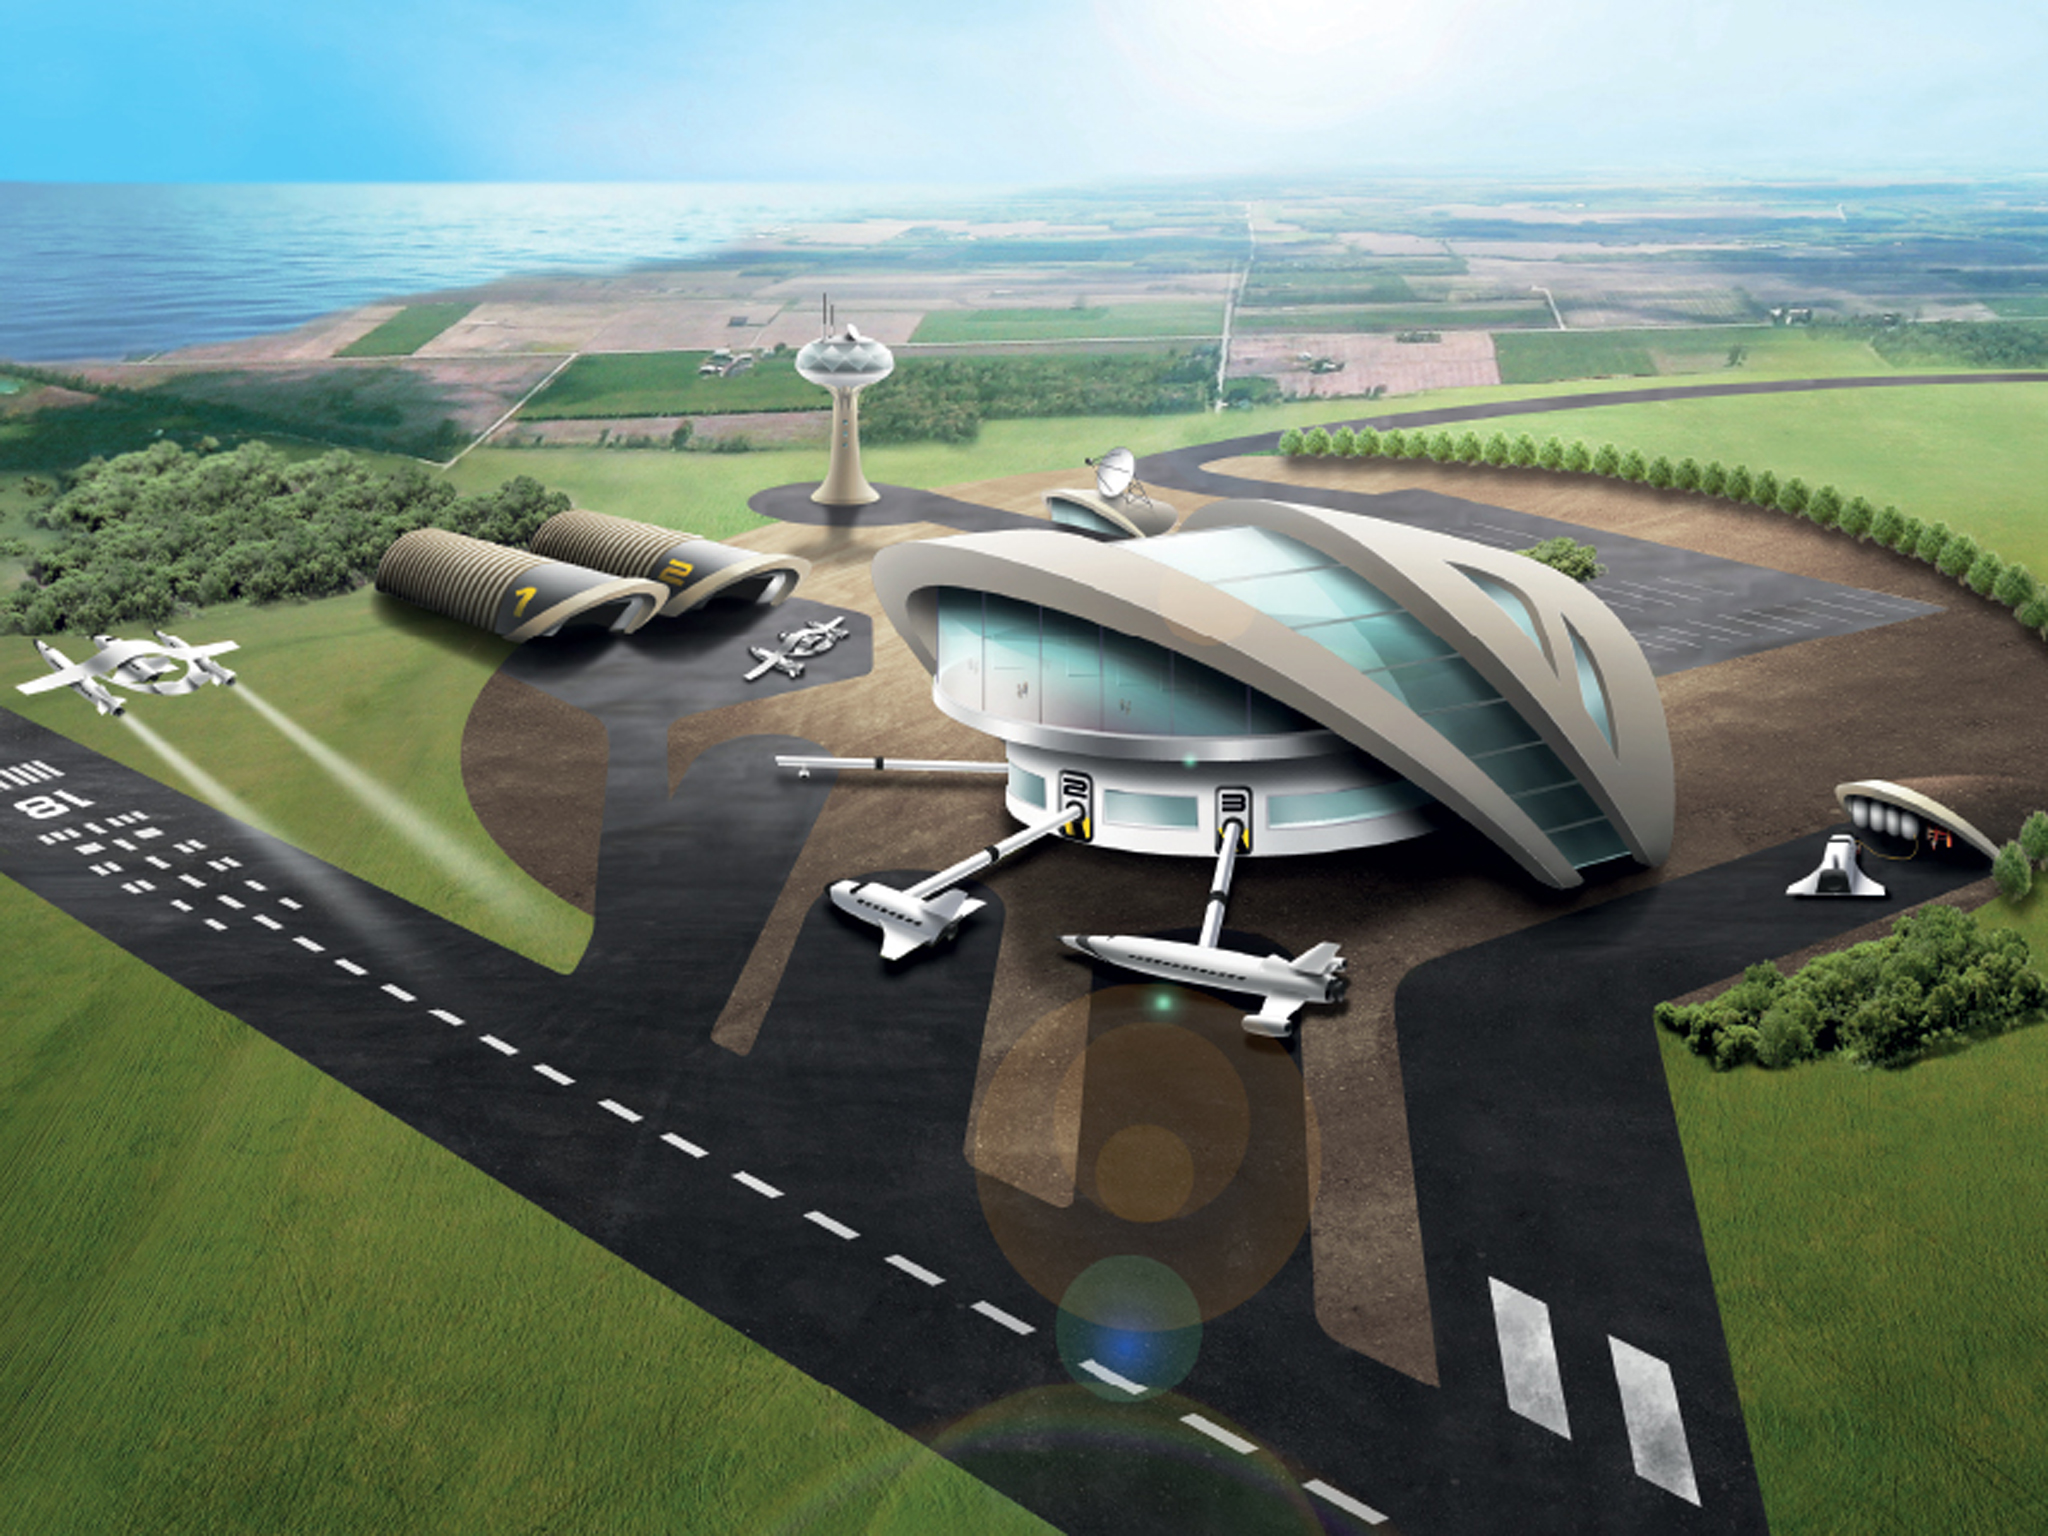 Spaceport High Quality Background on Wallpapers Vista